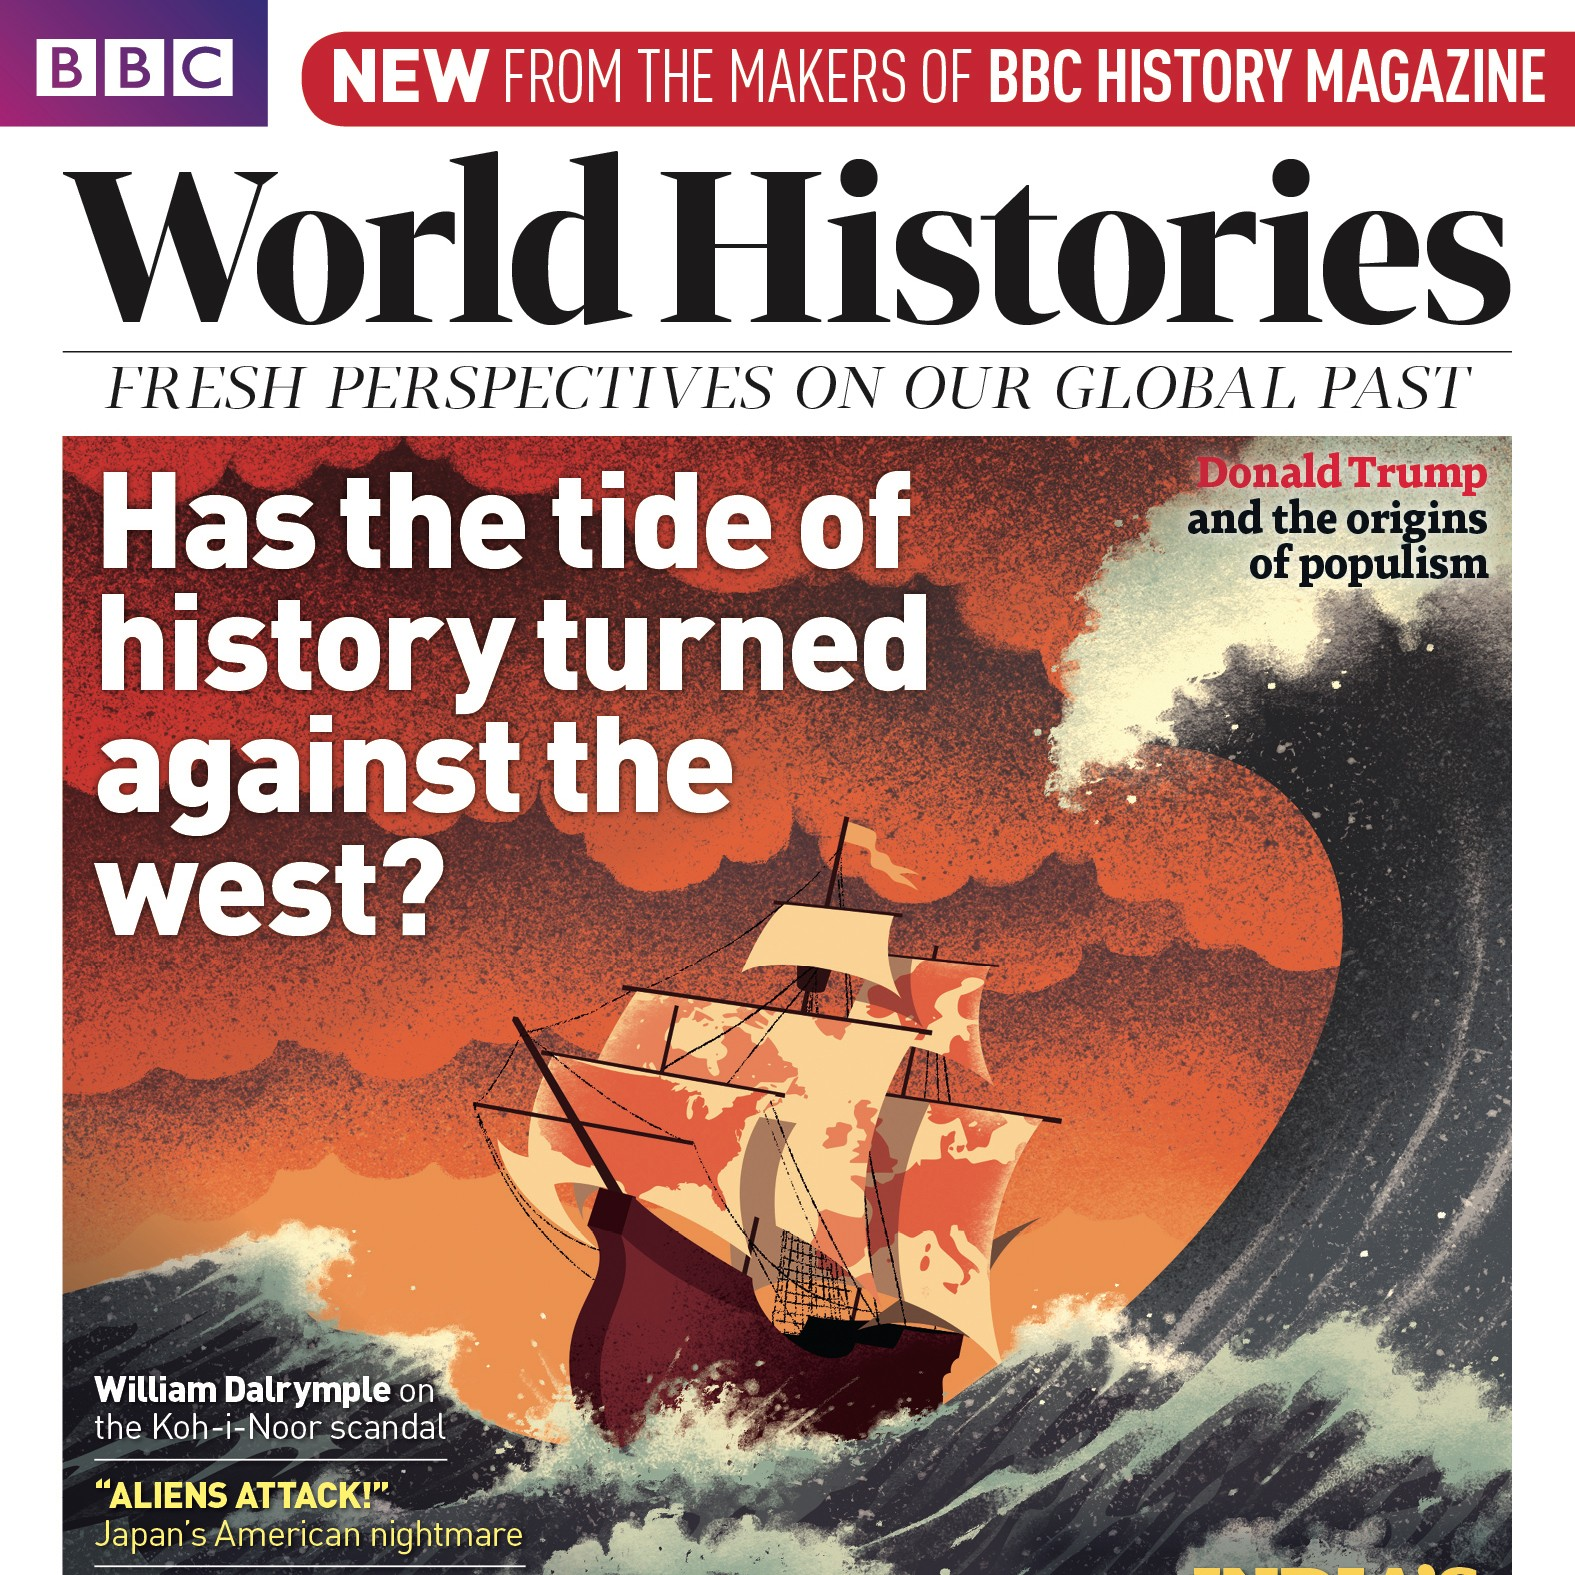 Cover of BBC World Histories Magazine